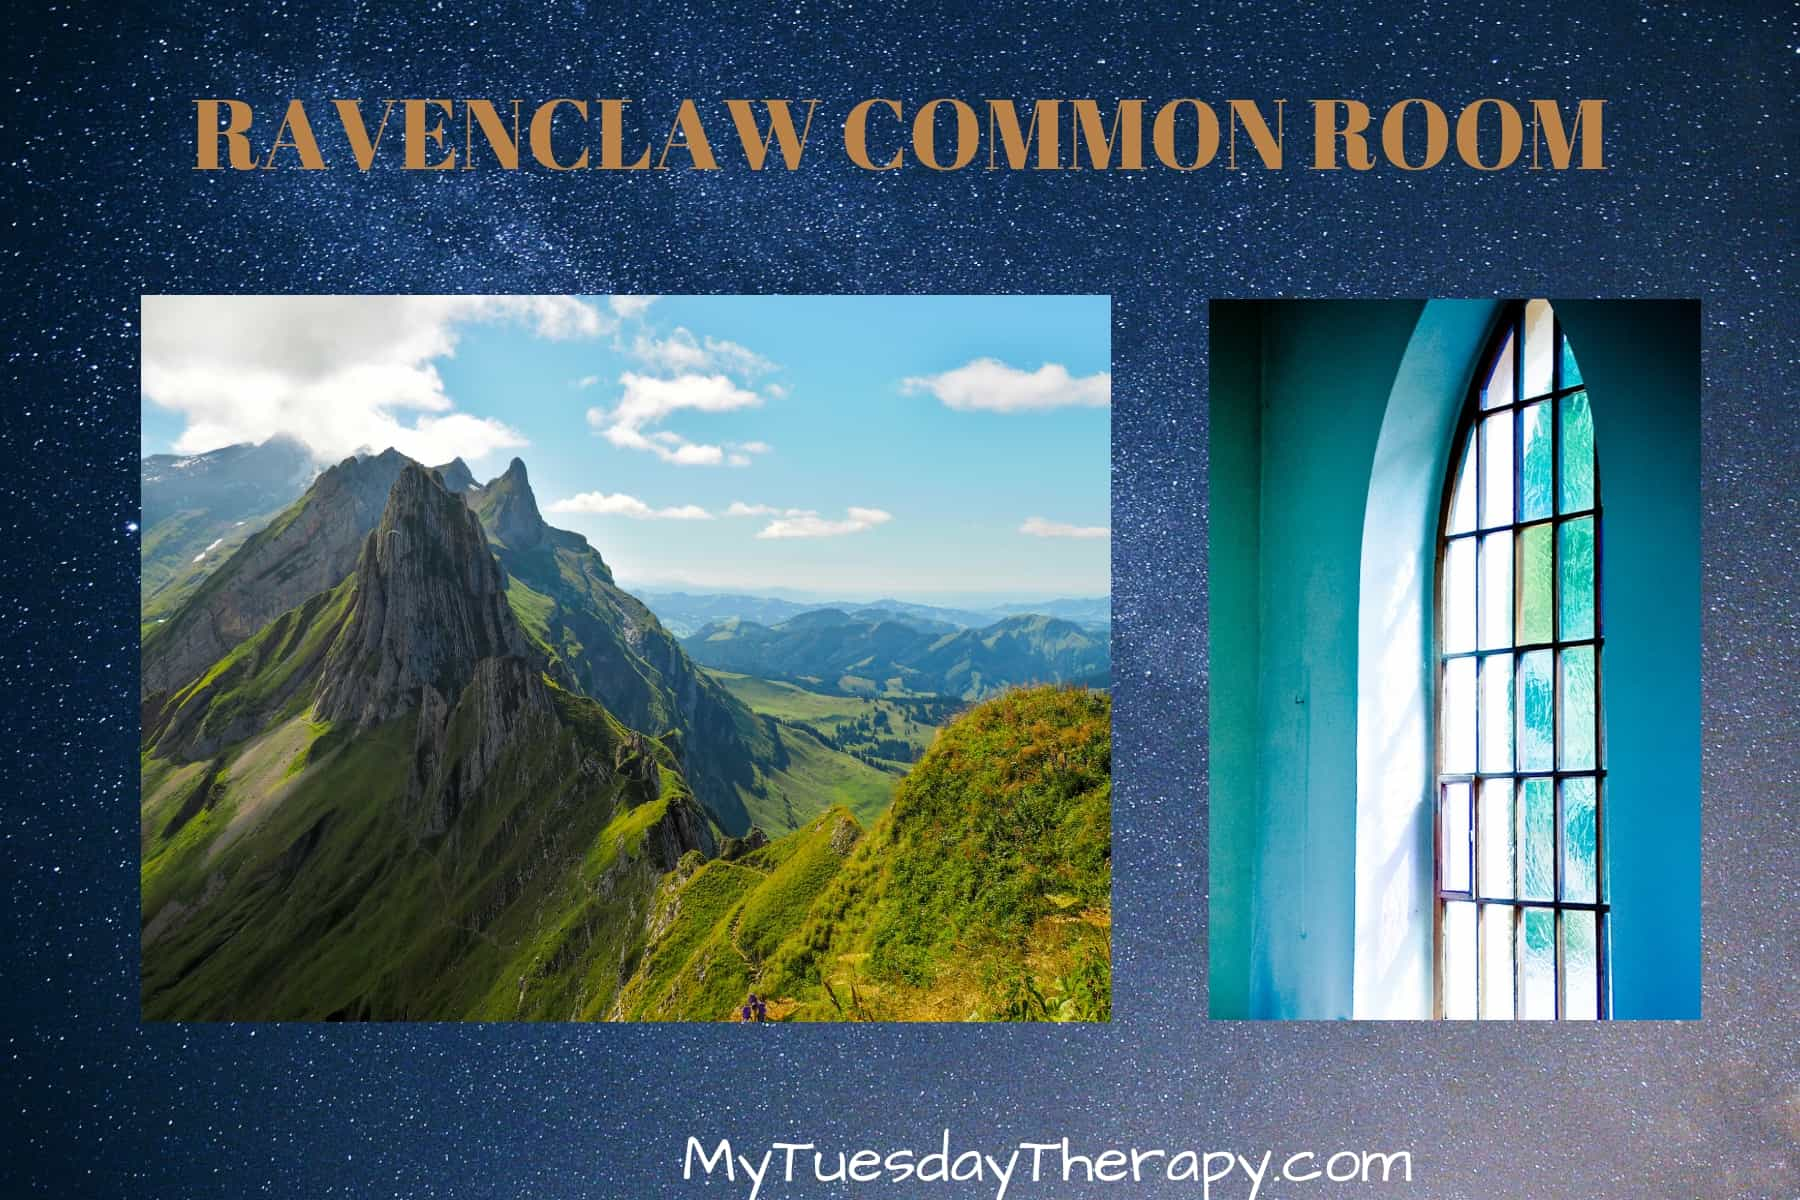 Ravenclaw Common Room. Mountain view, arched windows.